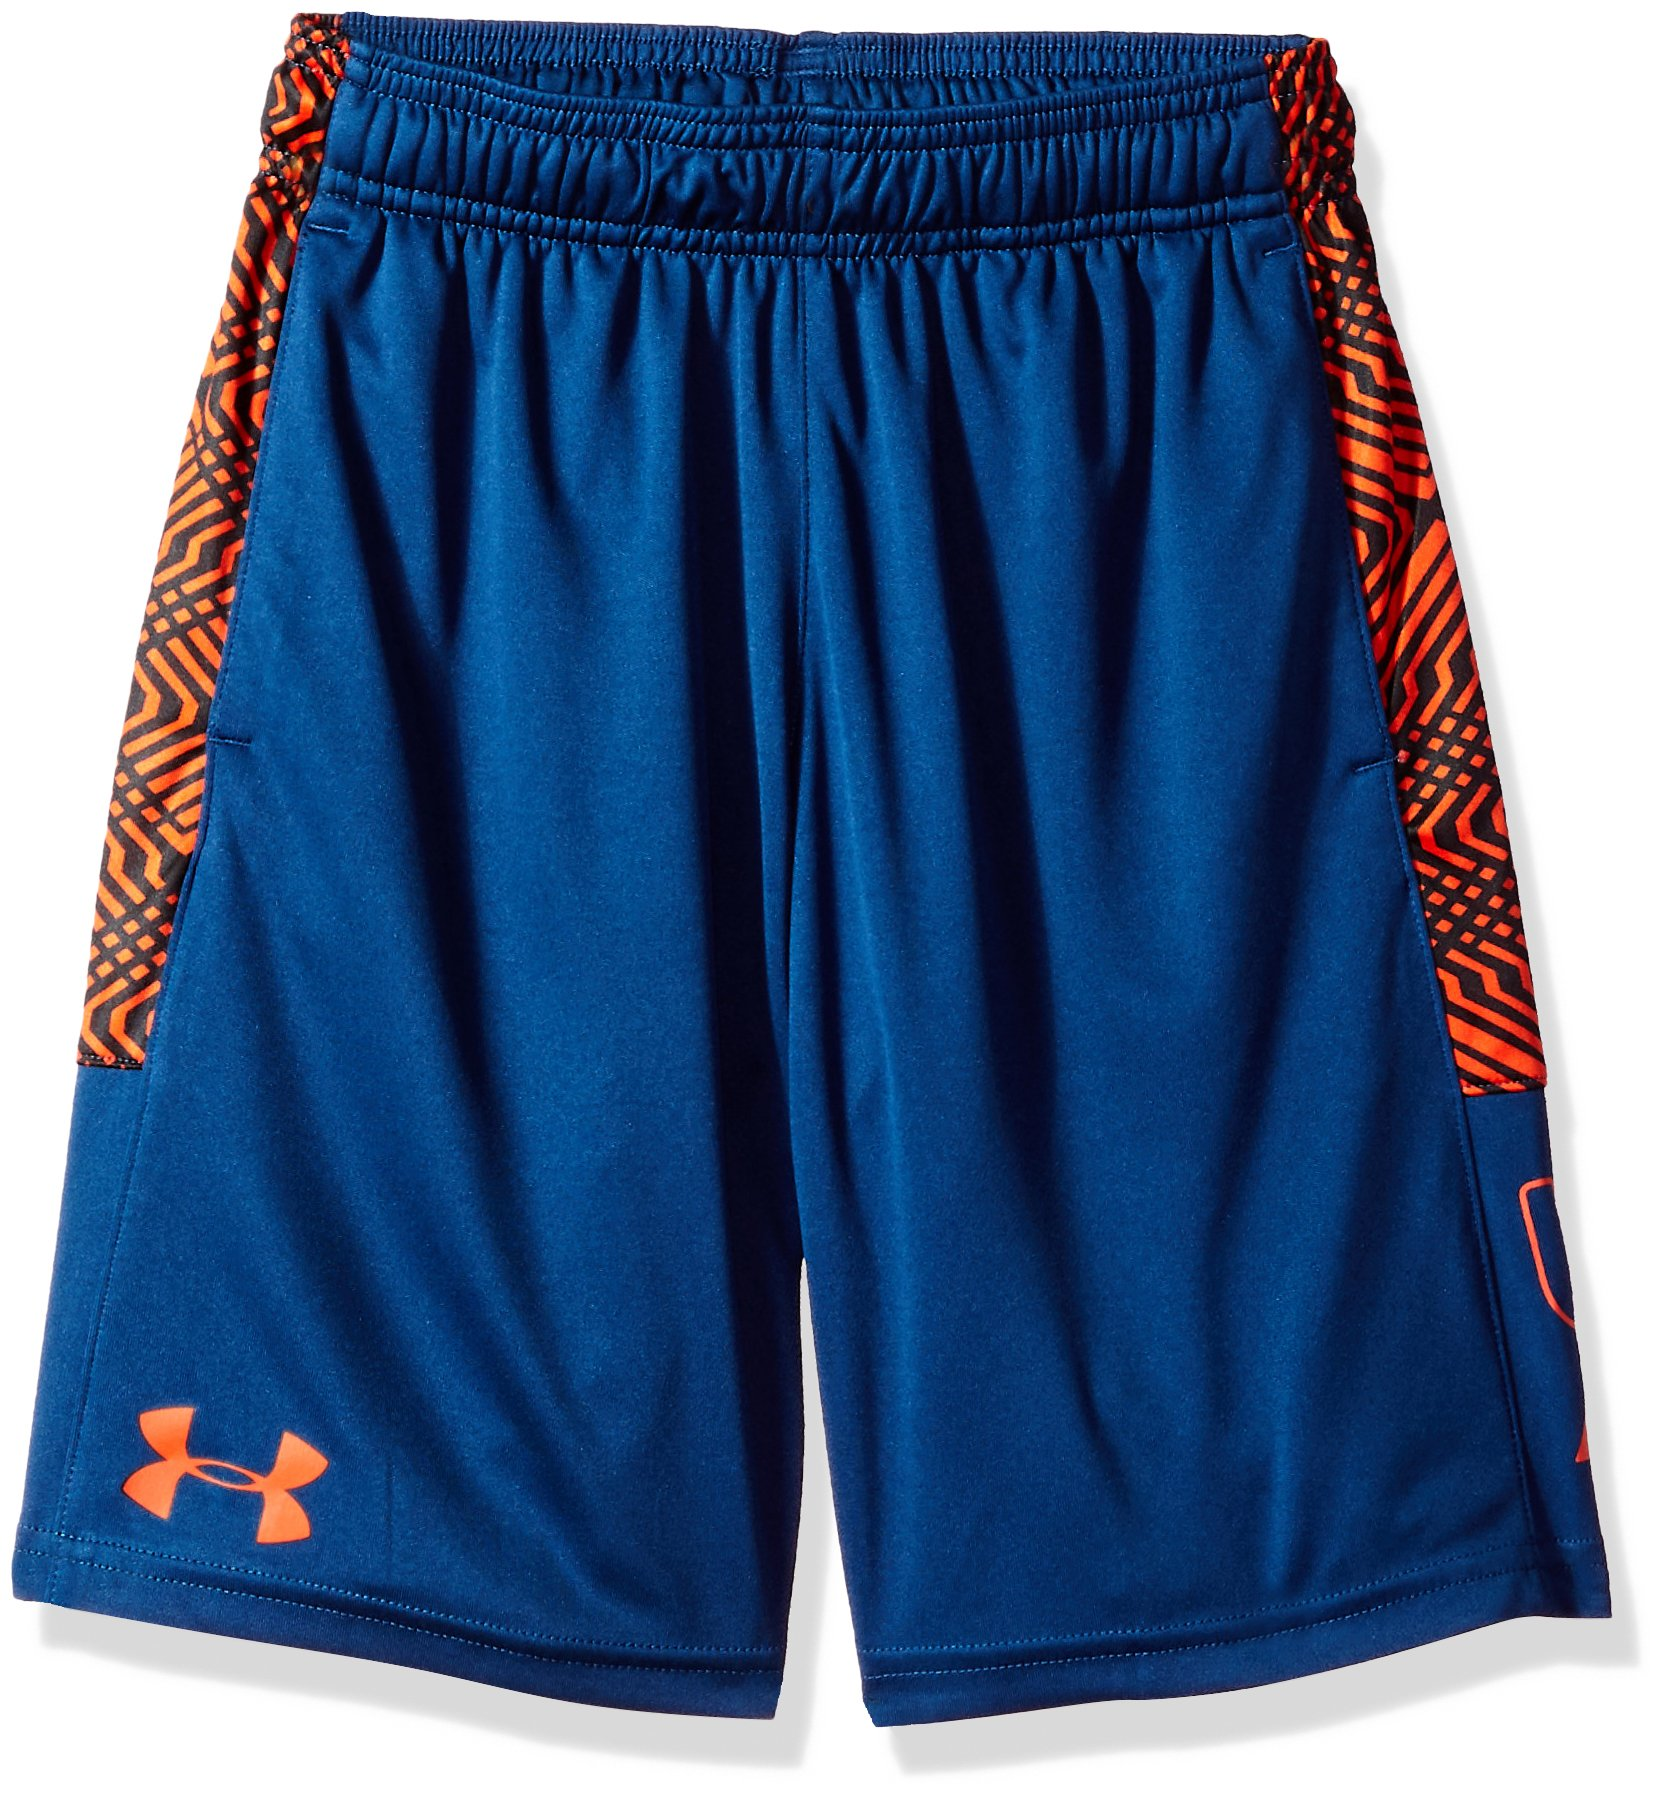 Under Armour Boys' Instinct Printed Shorts, Blackout Navy /Overcast Gray Youth X-Small by Under Armour